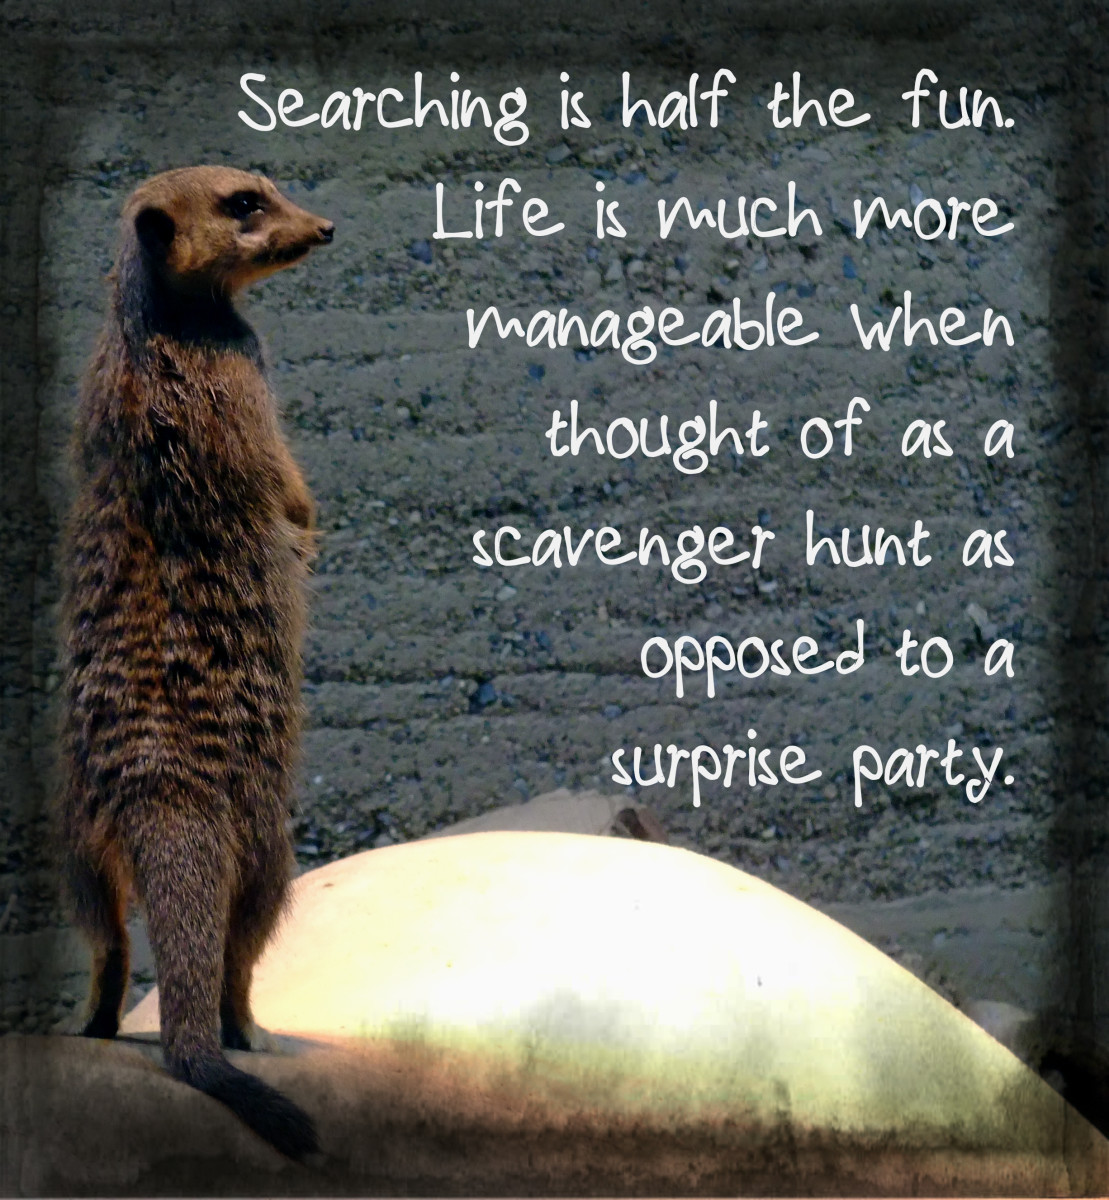 """Searching is half the fun. Life is much more manageable when thought of as a scavenger hunt as opposed to a surprise party."" - Jimmy Buffett, American singer"